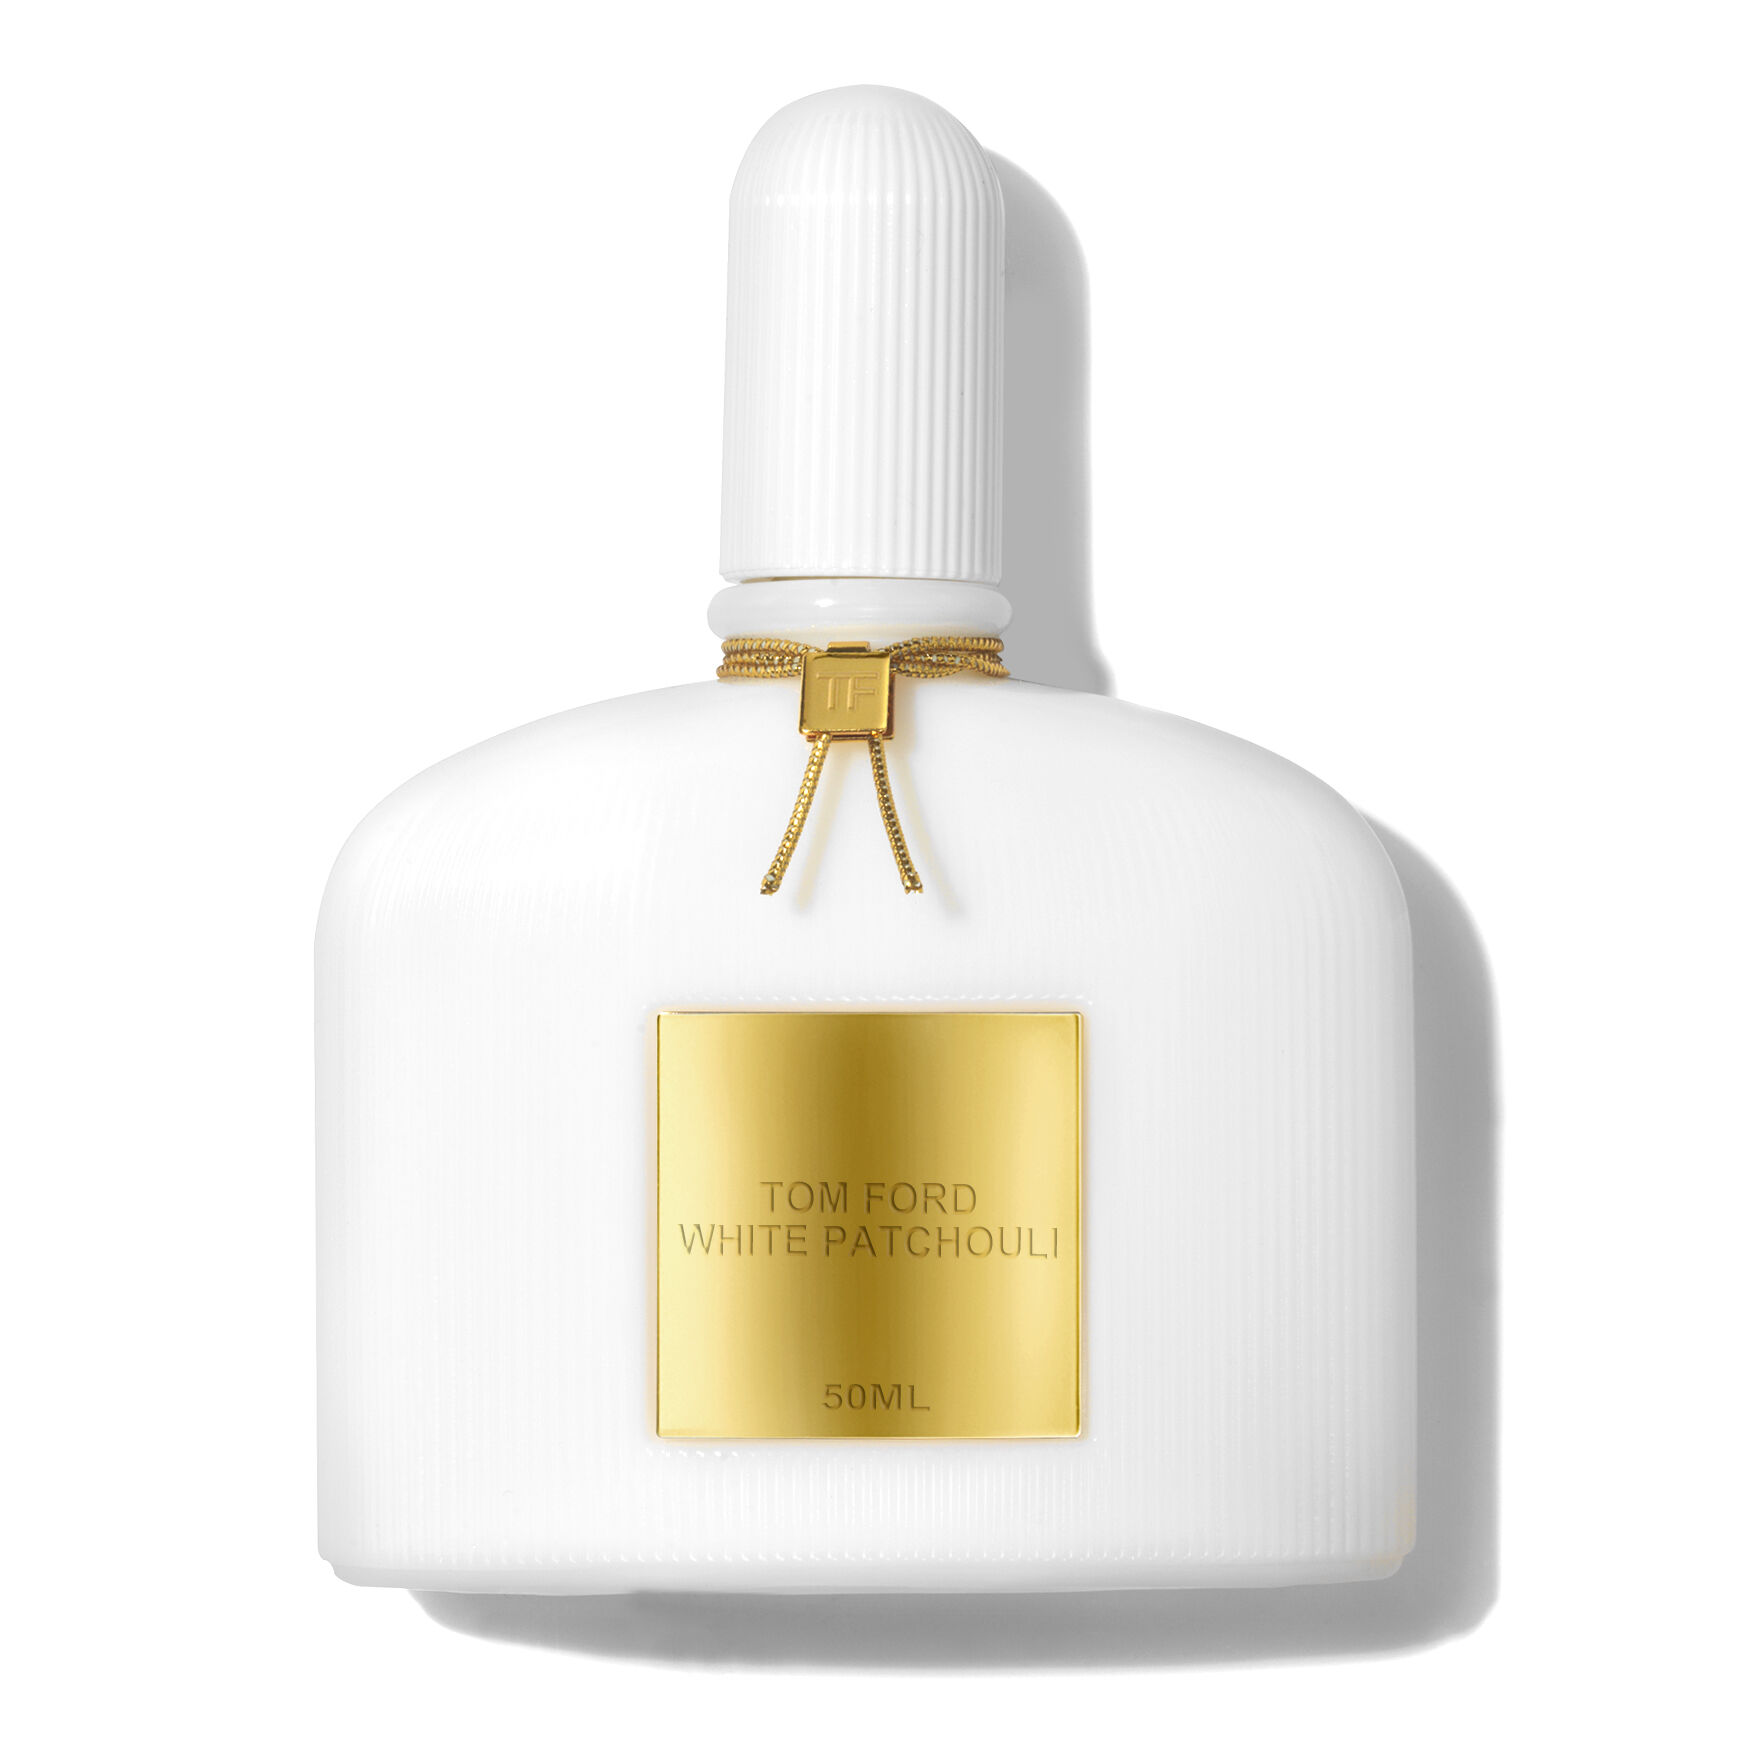 Tom Ford White Patchouli Space Nk